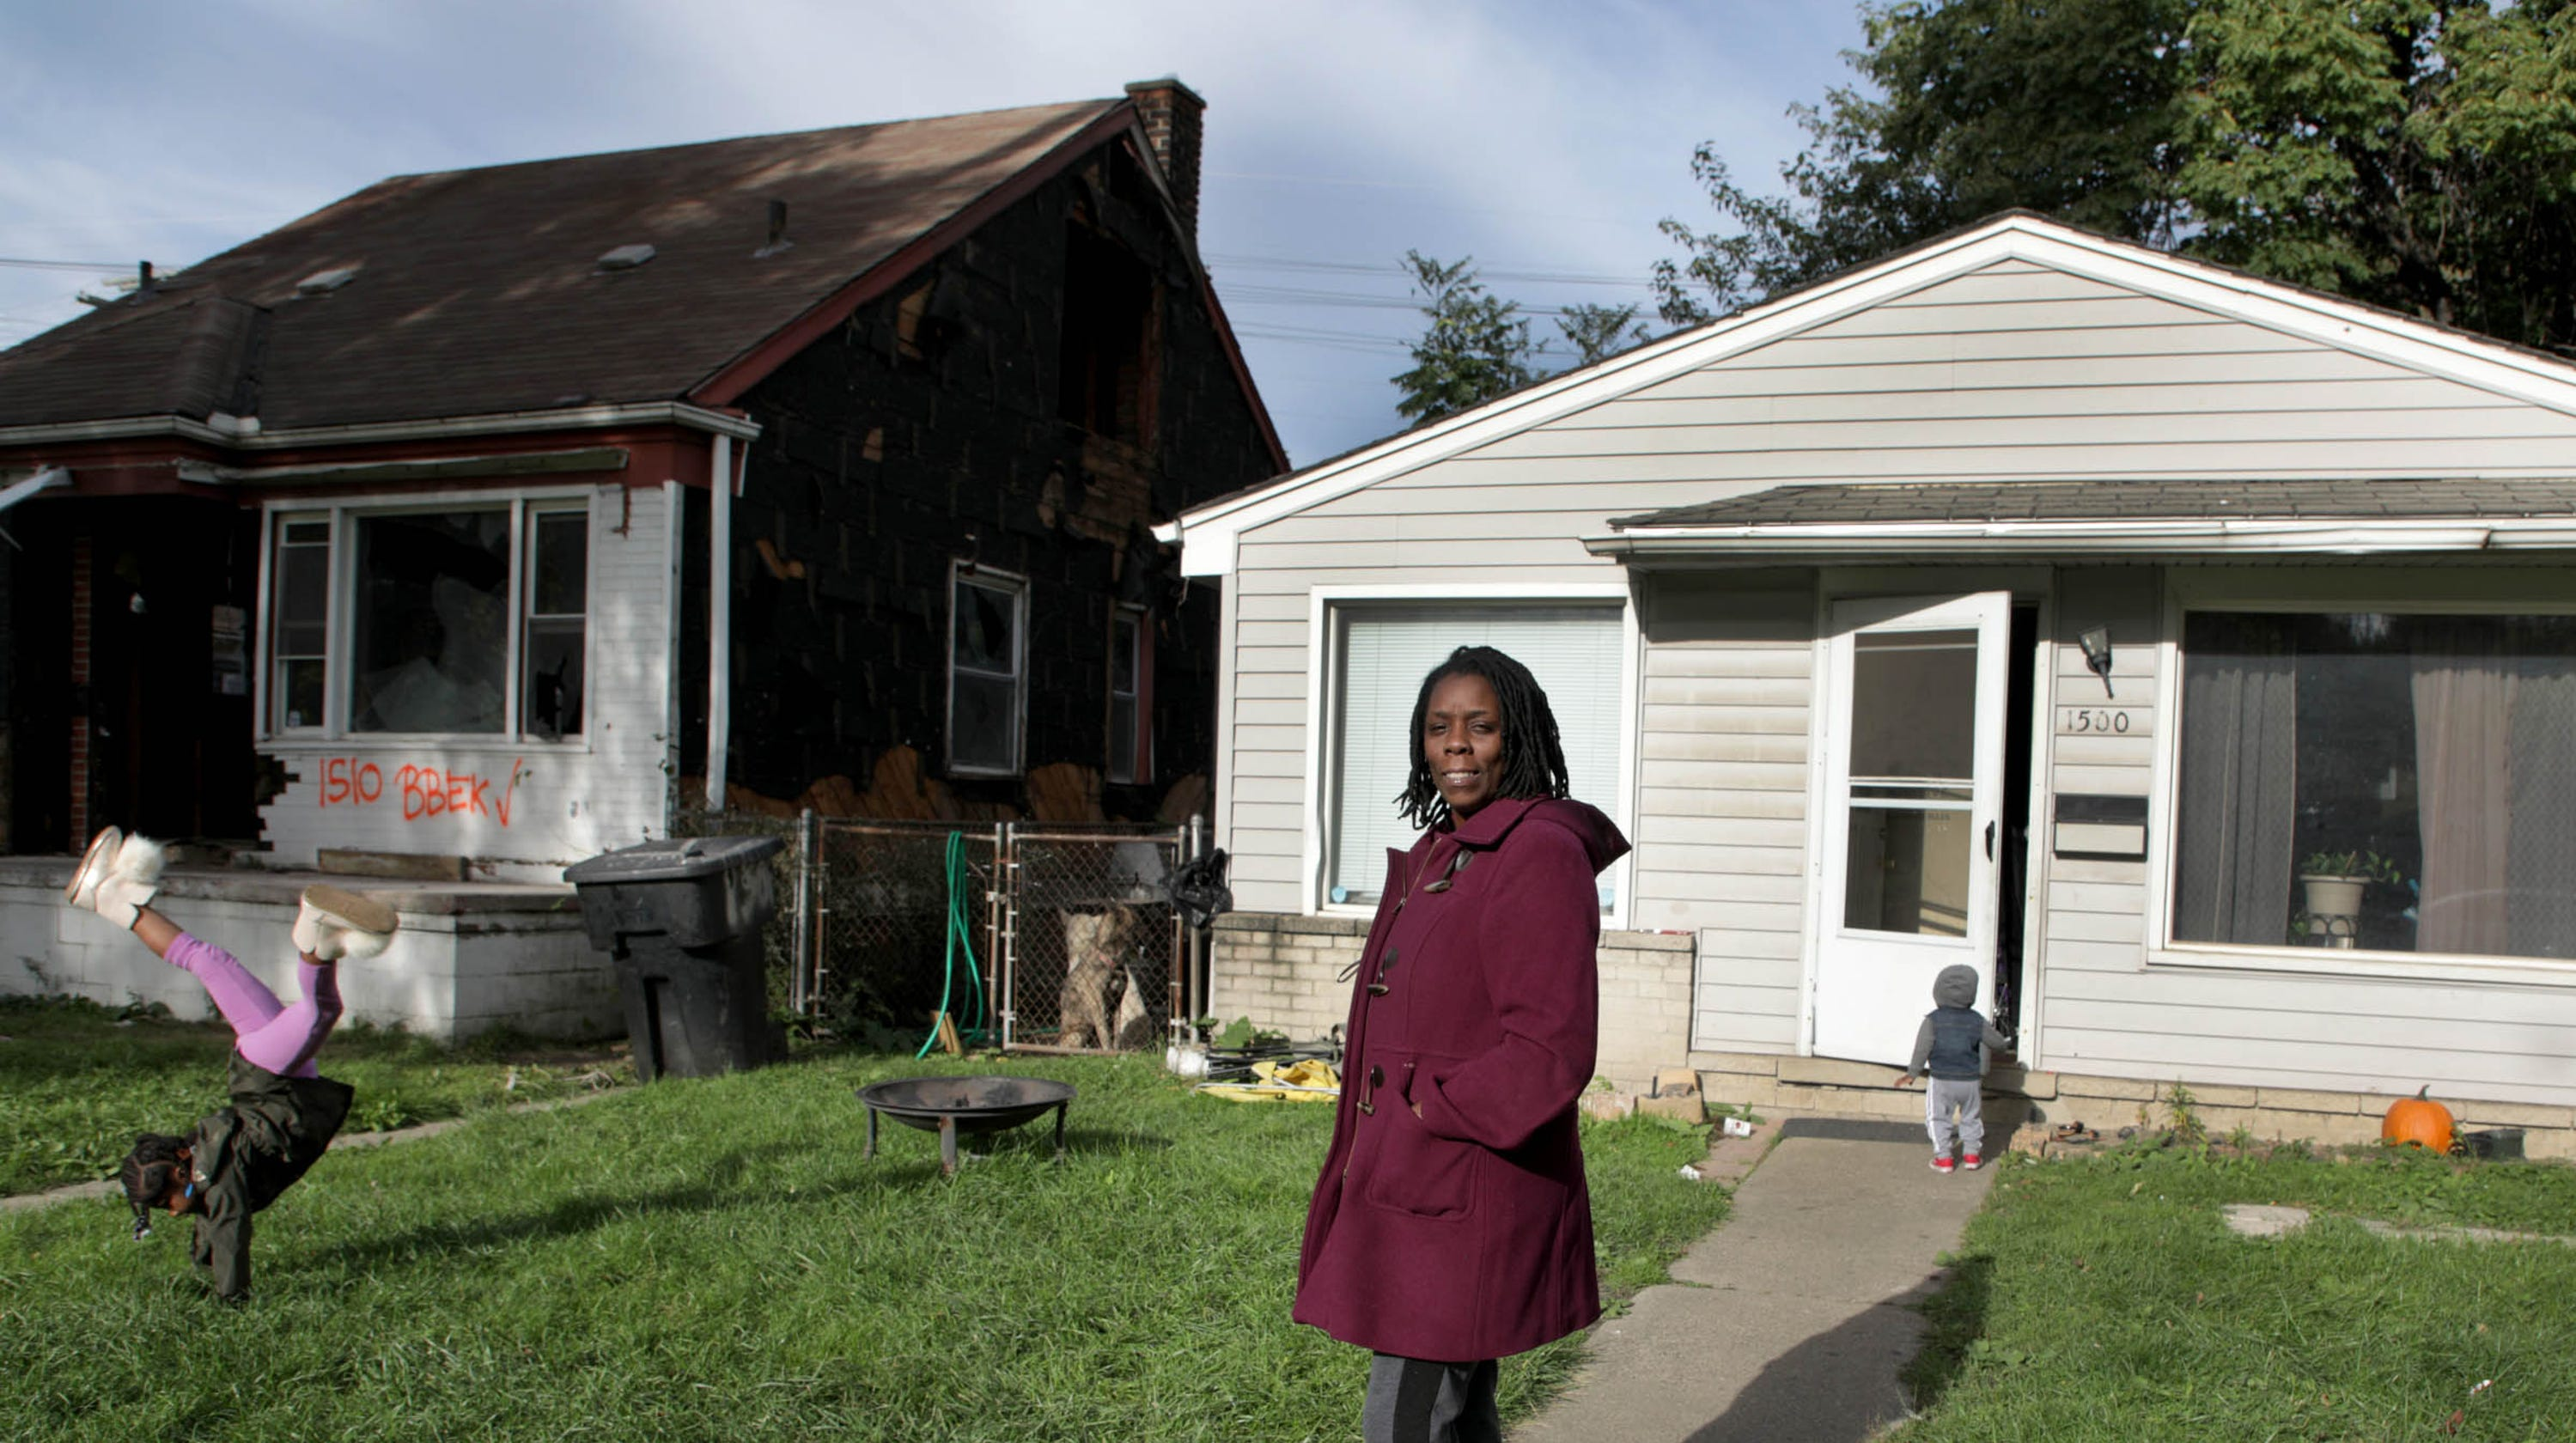 Foreclosure Buyback Plan Saves Detroiters From Homelessness